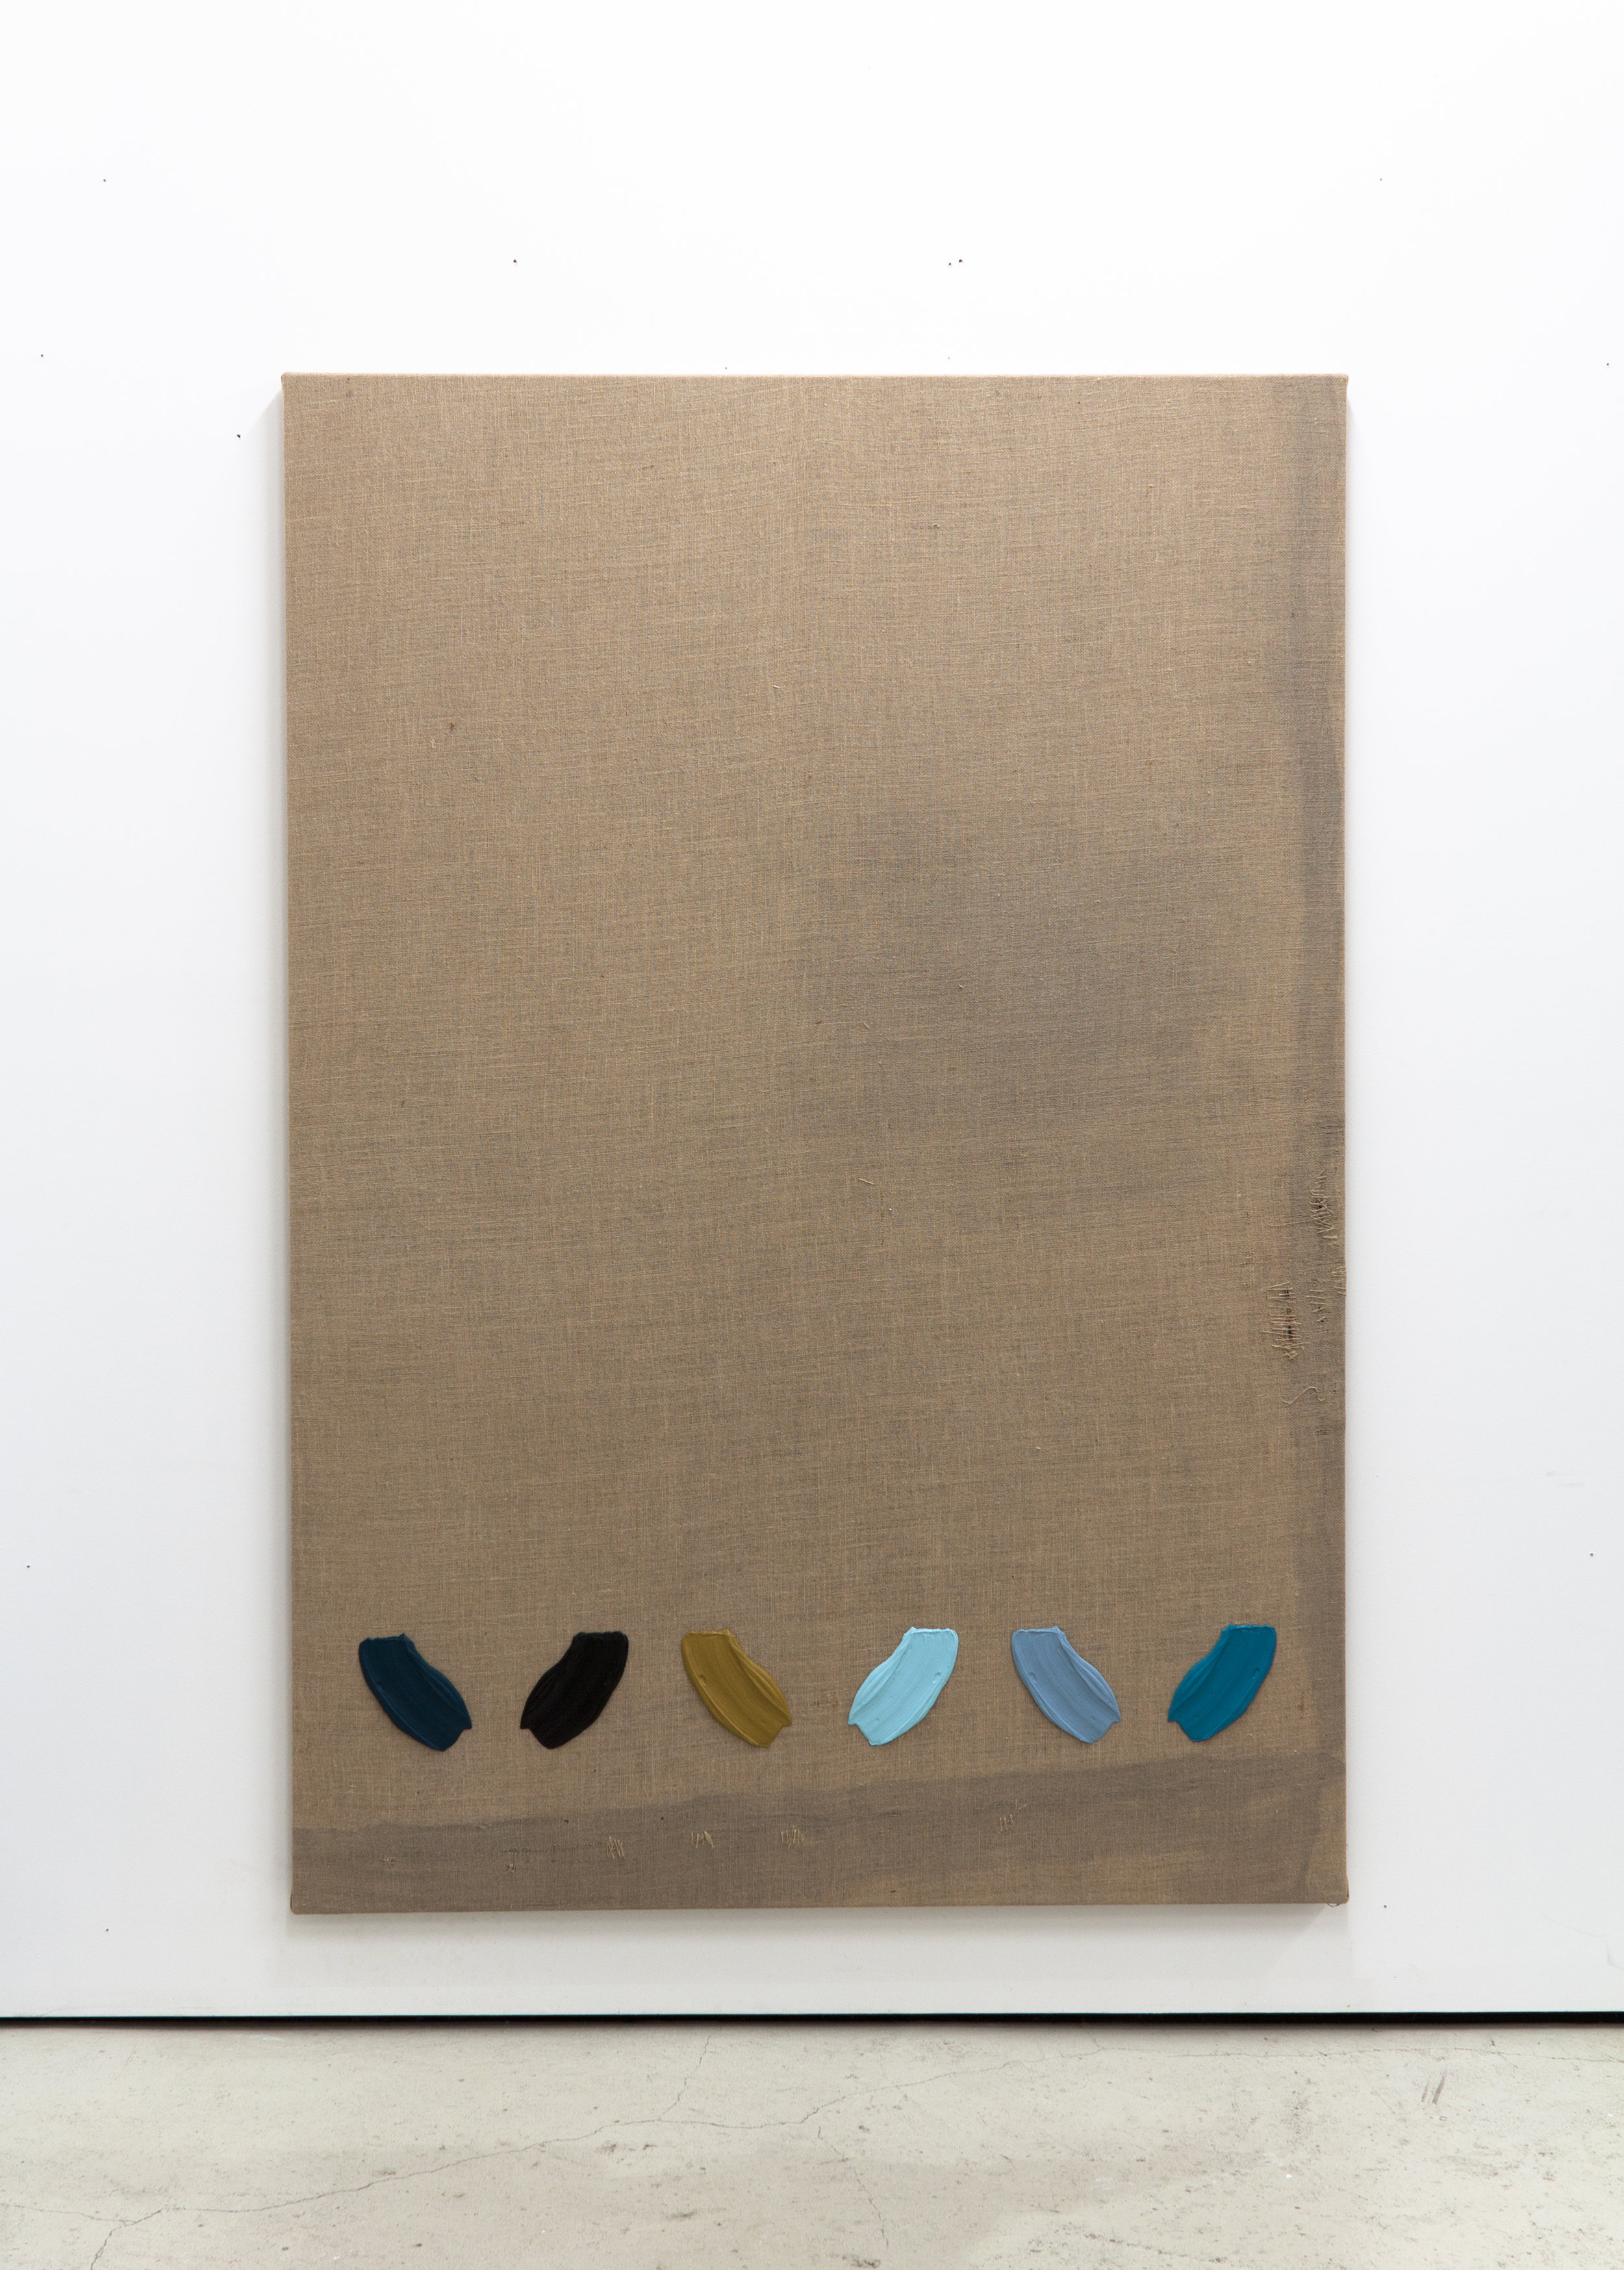 Untitled, 2019, Alkyd and acrylics on jute, 71 x 49.2 inches